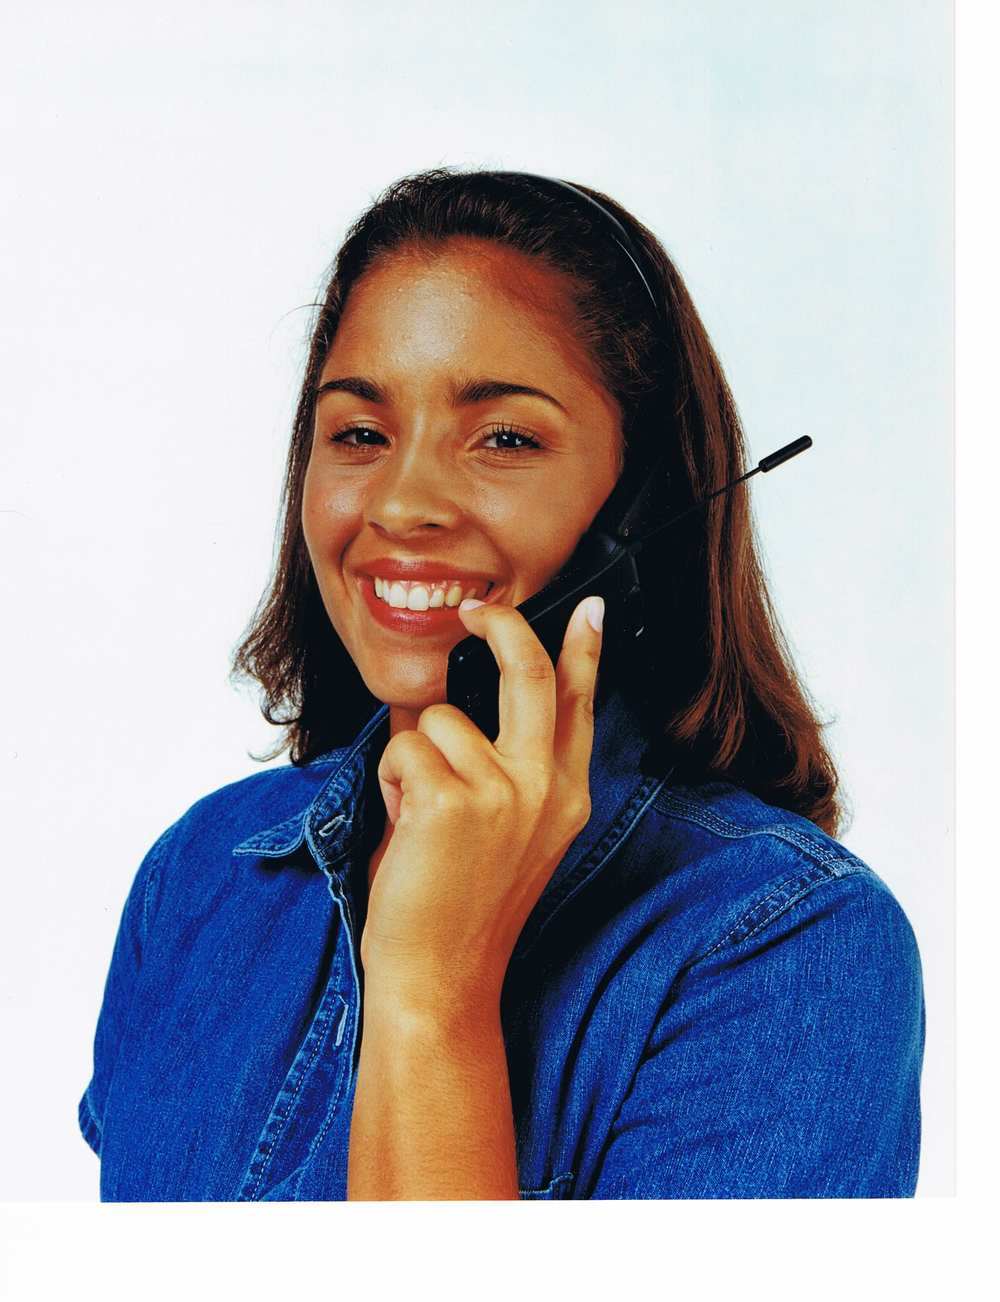 Marisol_Phone_Left-Hand.jpg